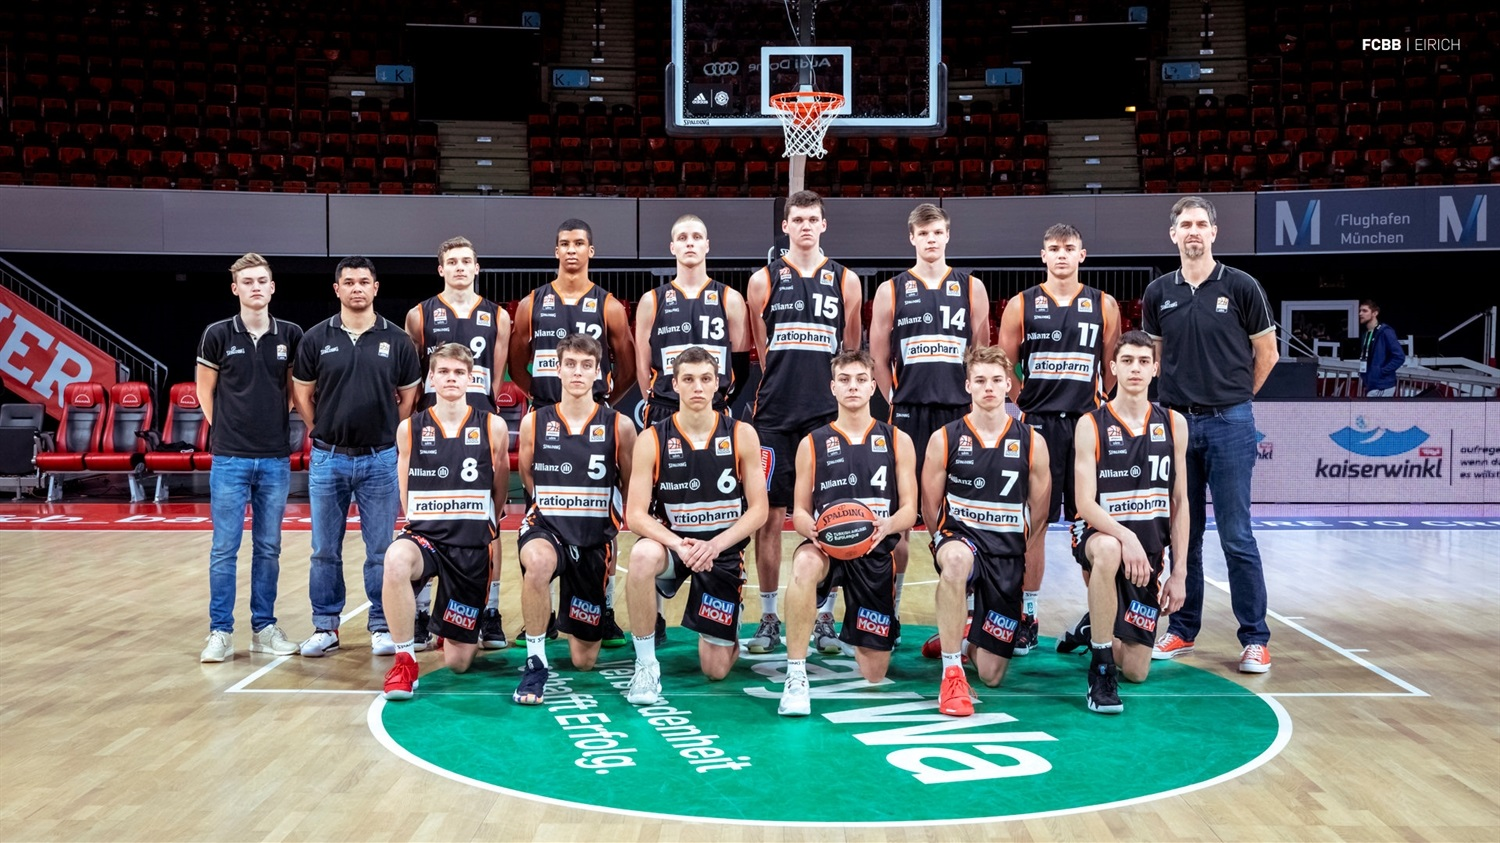 U18 ratiopharm Ulm - ANGT Munich 2019 (photo FCBB - Eirich) JT18